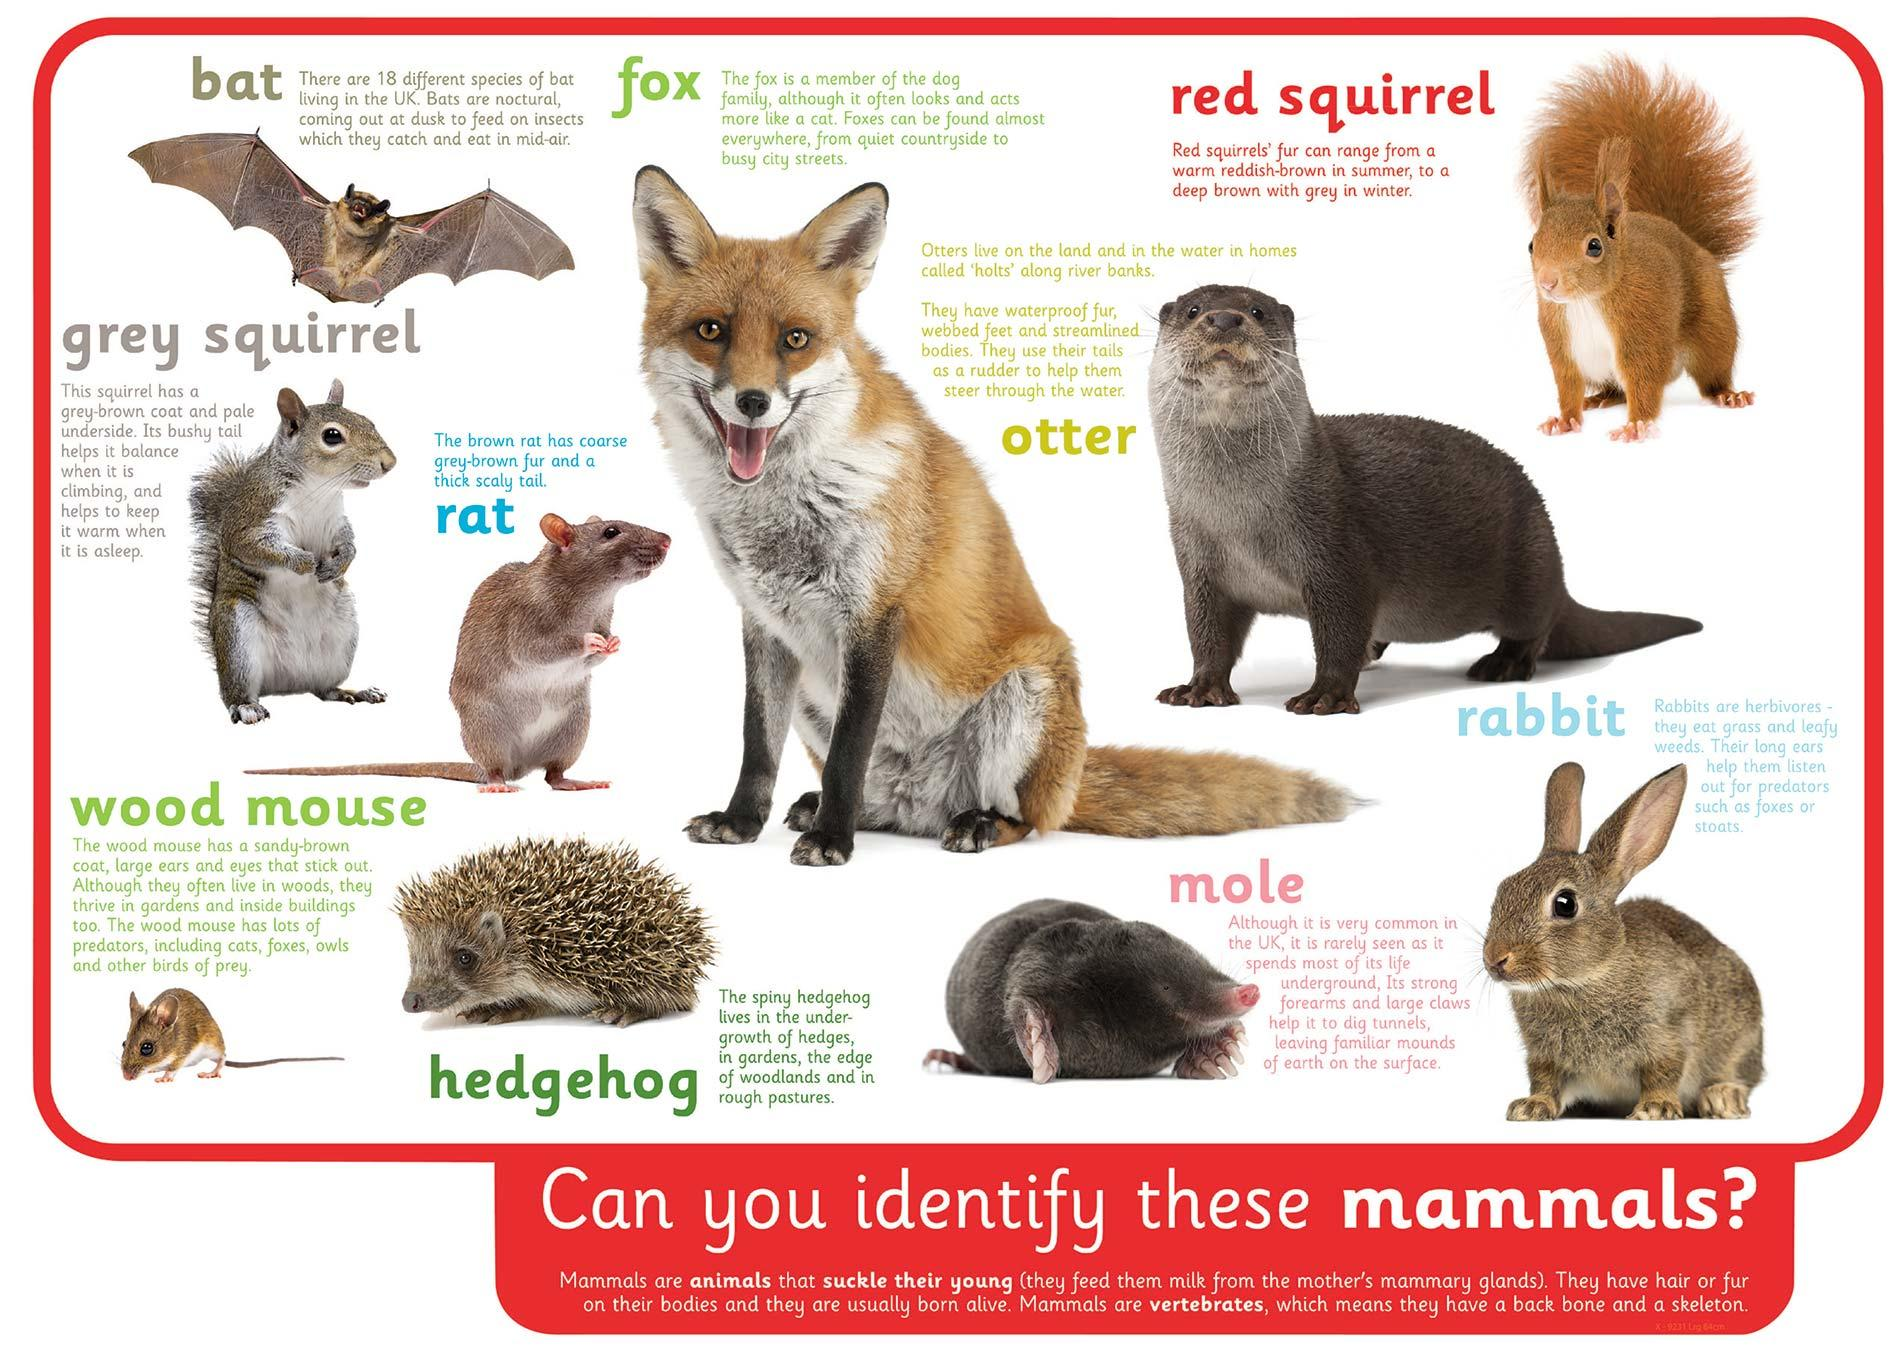 Can You Identify These Mammals